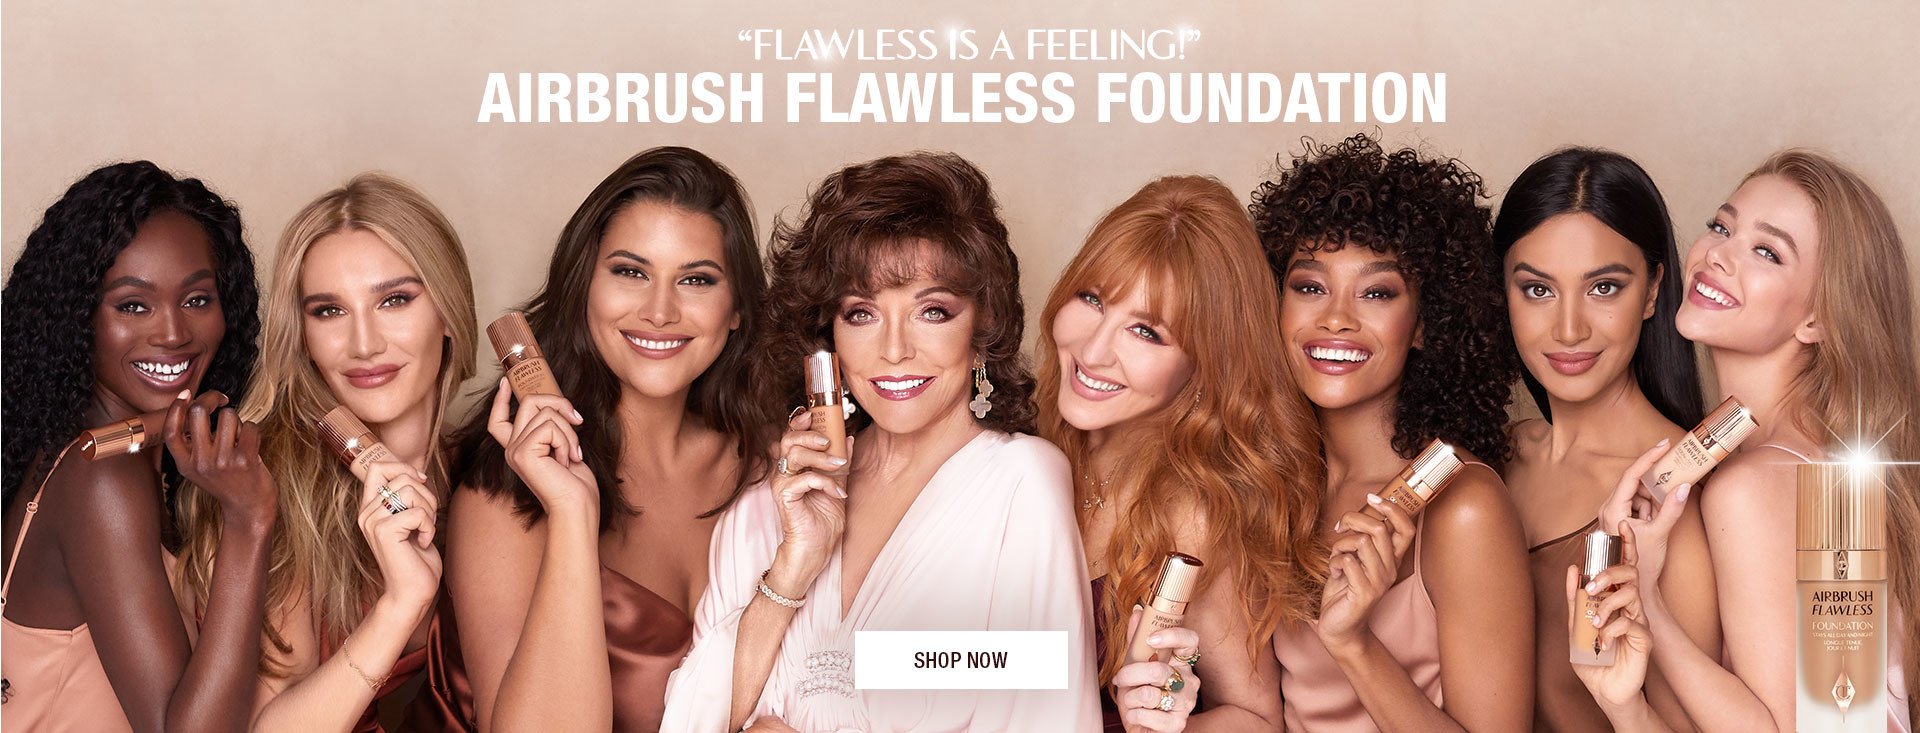 Airbrush Flawless Foundation Models